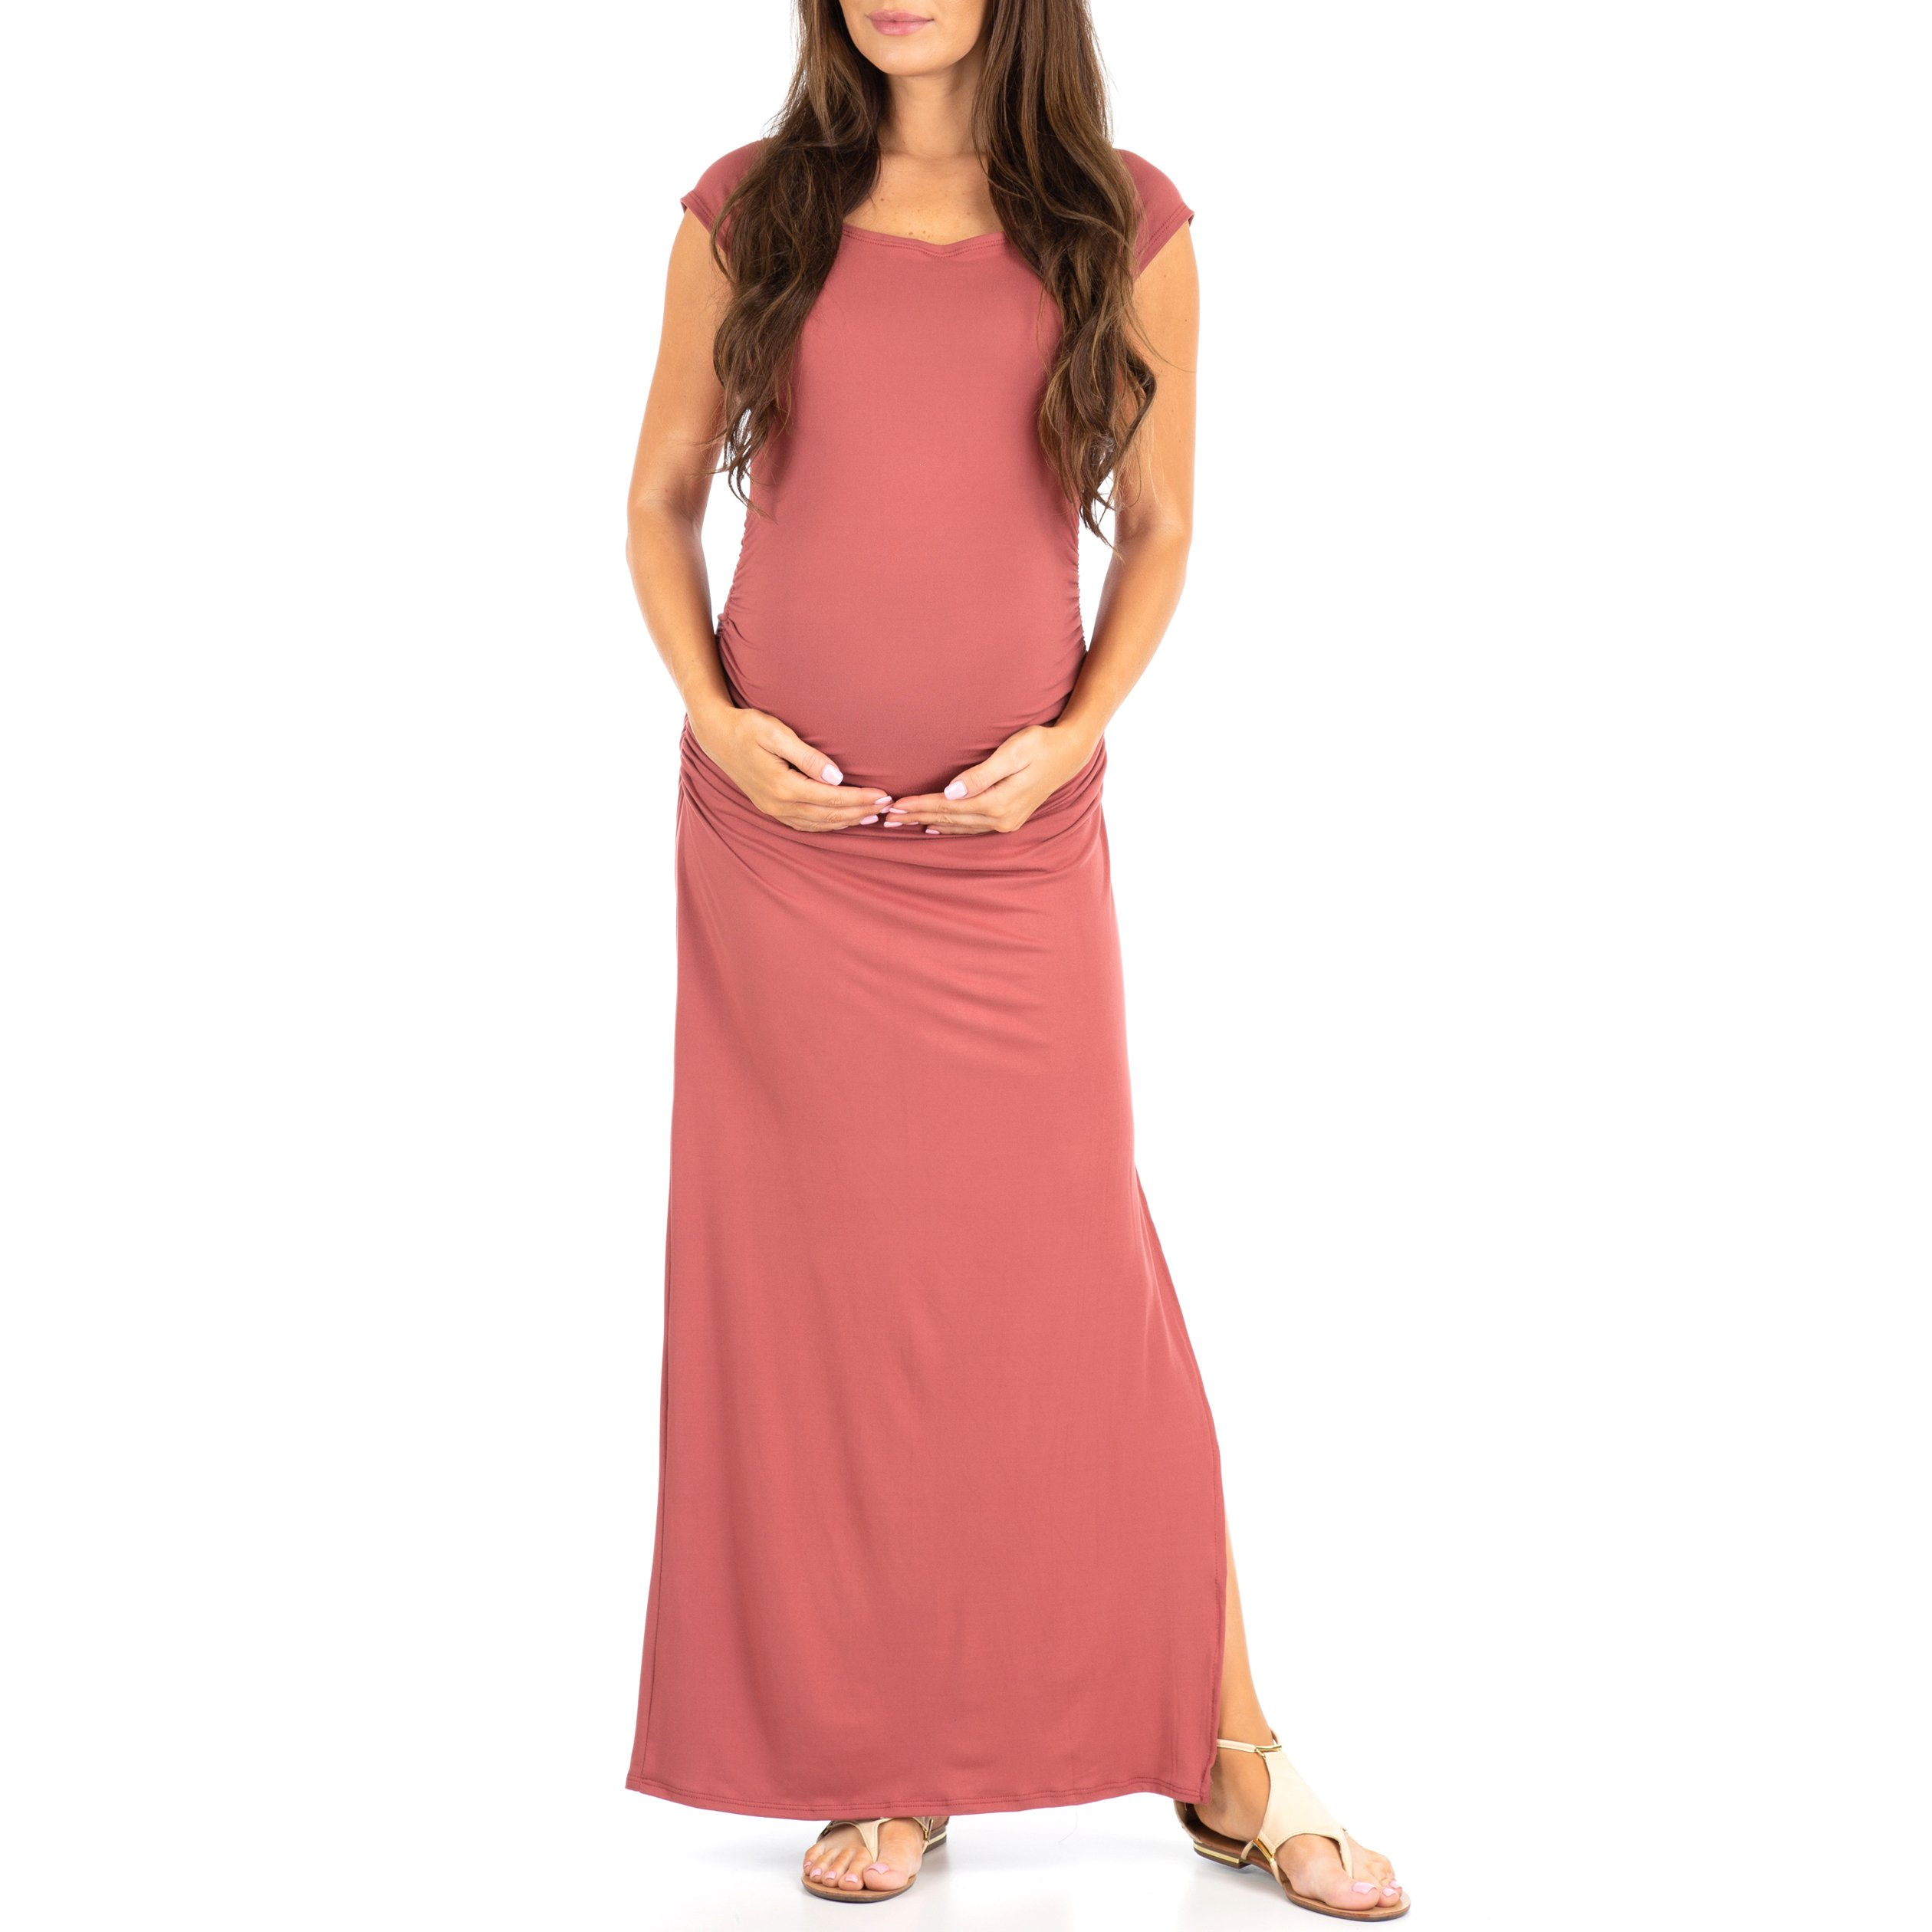 Women's Shortleeve Ruched Bodycon Maternity Dress with Side Slits - Made in USA